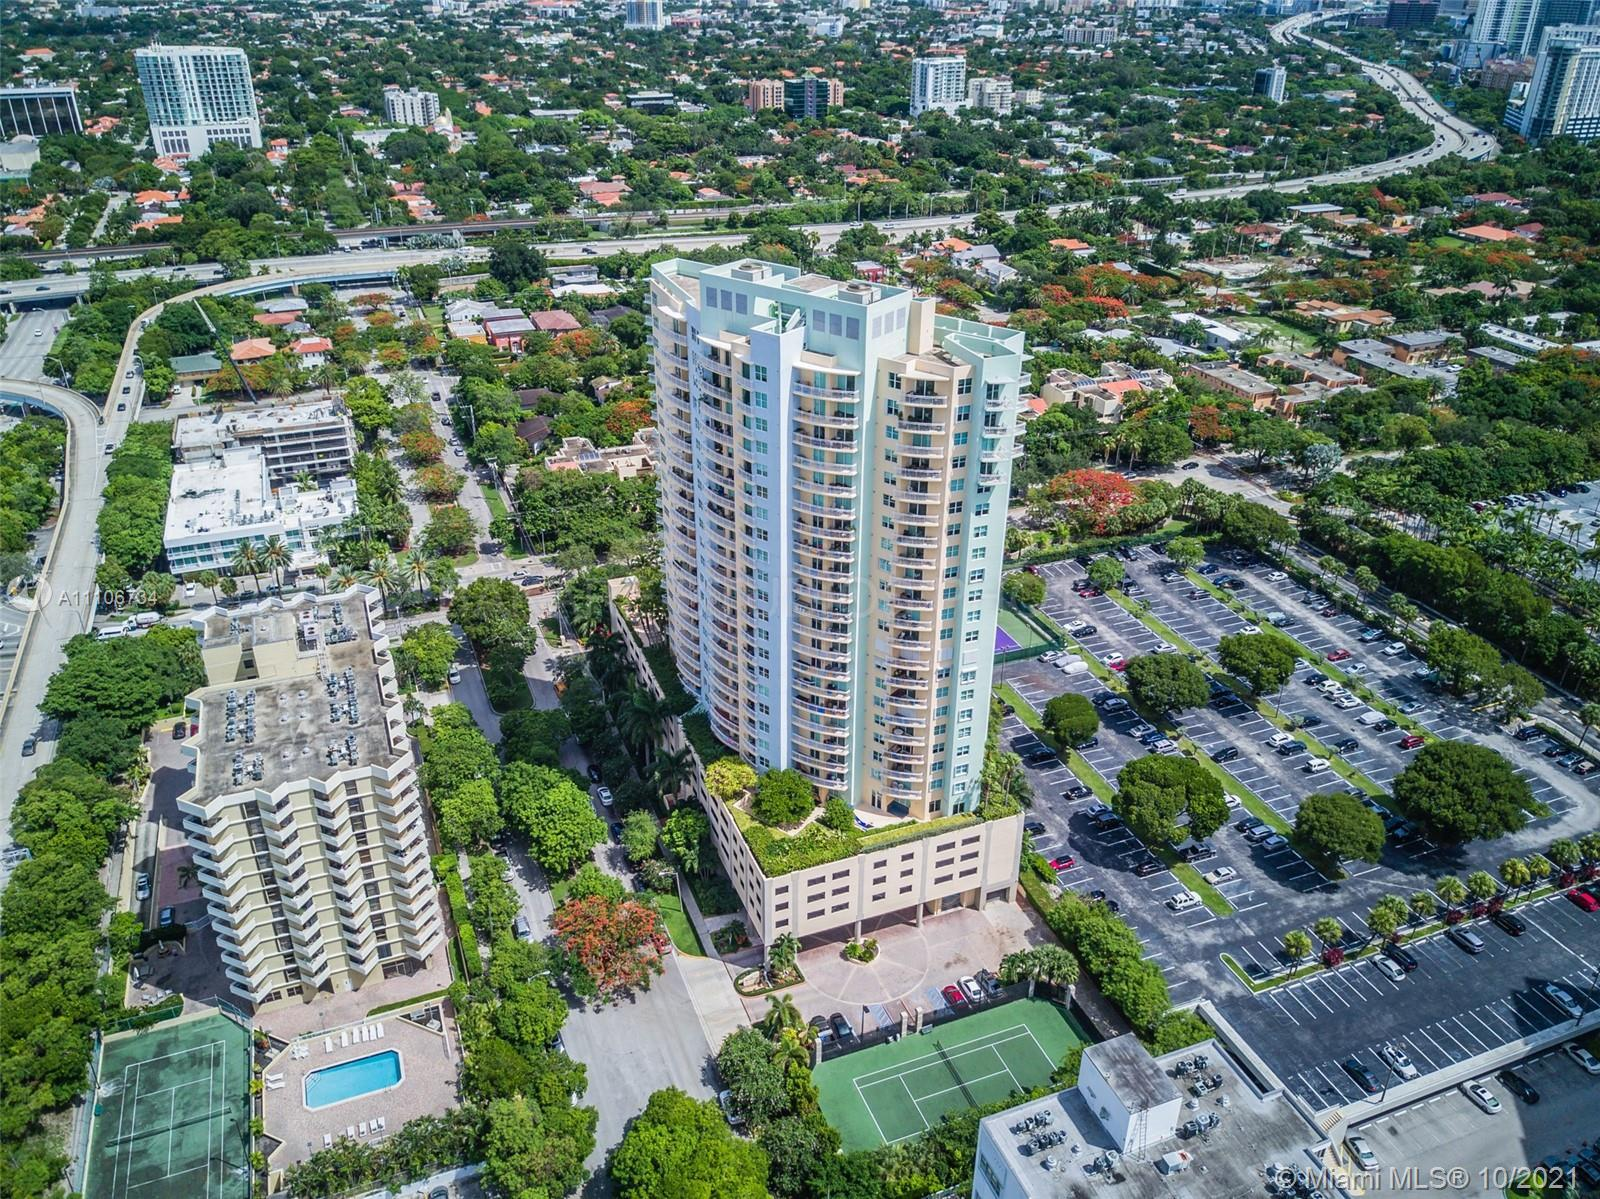 Beautiful 1bdrm 1bth in secluded Metropolitan at Brickell. Unit has extensive views of Biscayne Bay